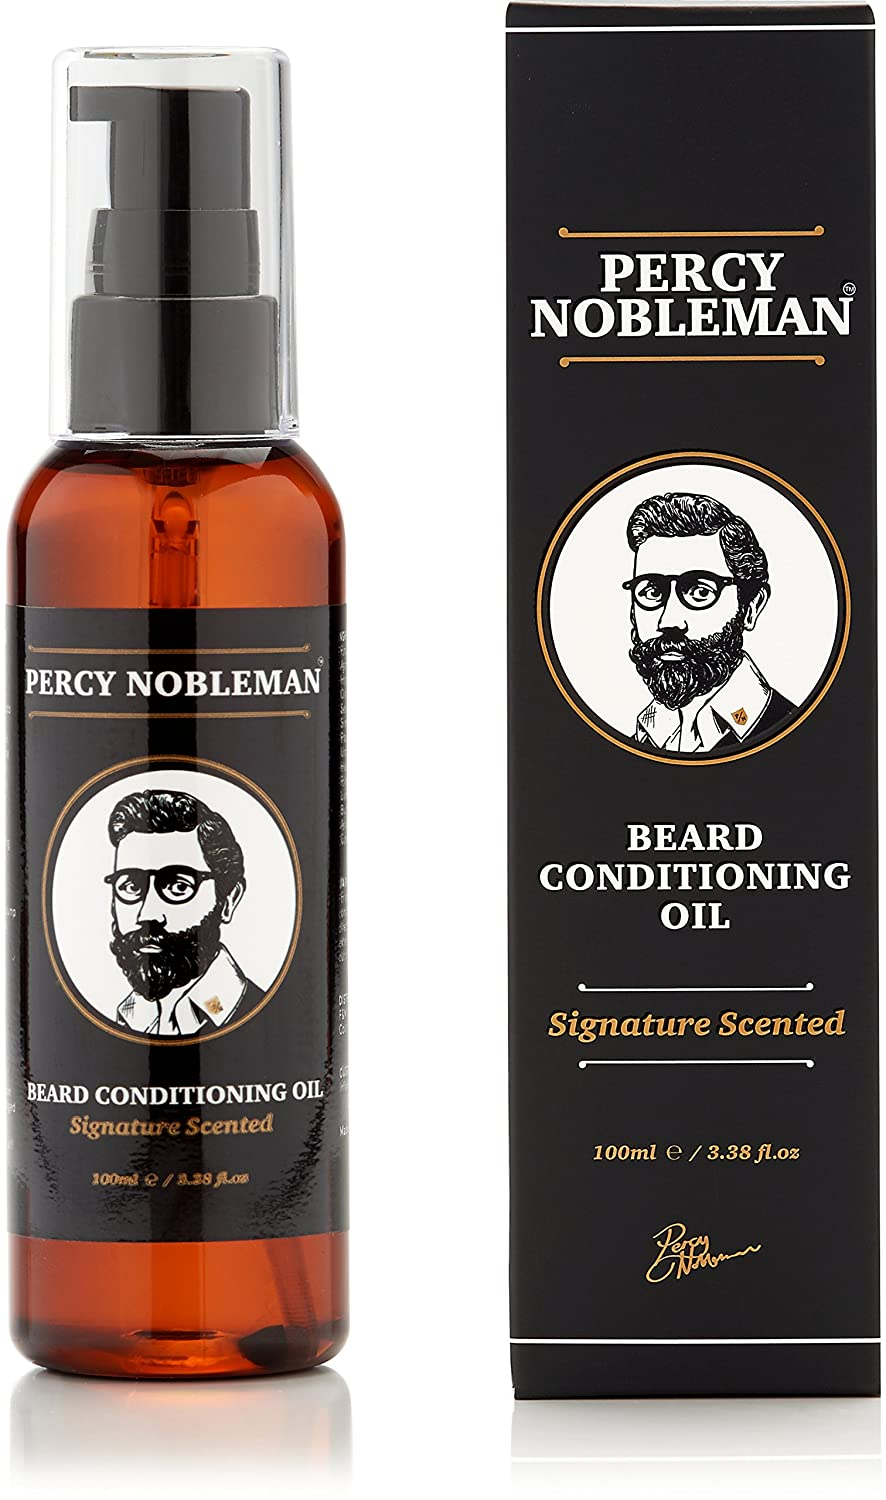 Beard Oil by Percy Nobleman - 99% Naturally Derived Newly Available Signature Scented Blend. Beard Conditioning Oil With a Special Mixture of Quality Ingredients that Softens and Conditions your Facial Hair. (100ml) (100ml)